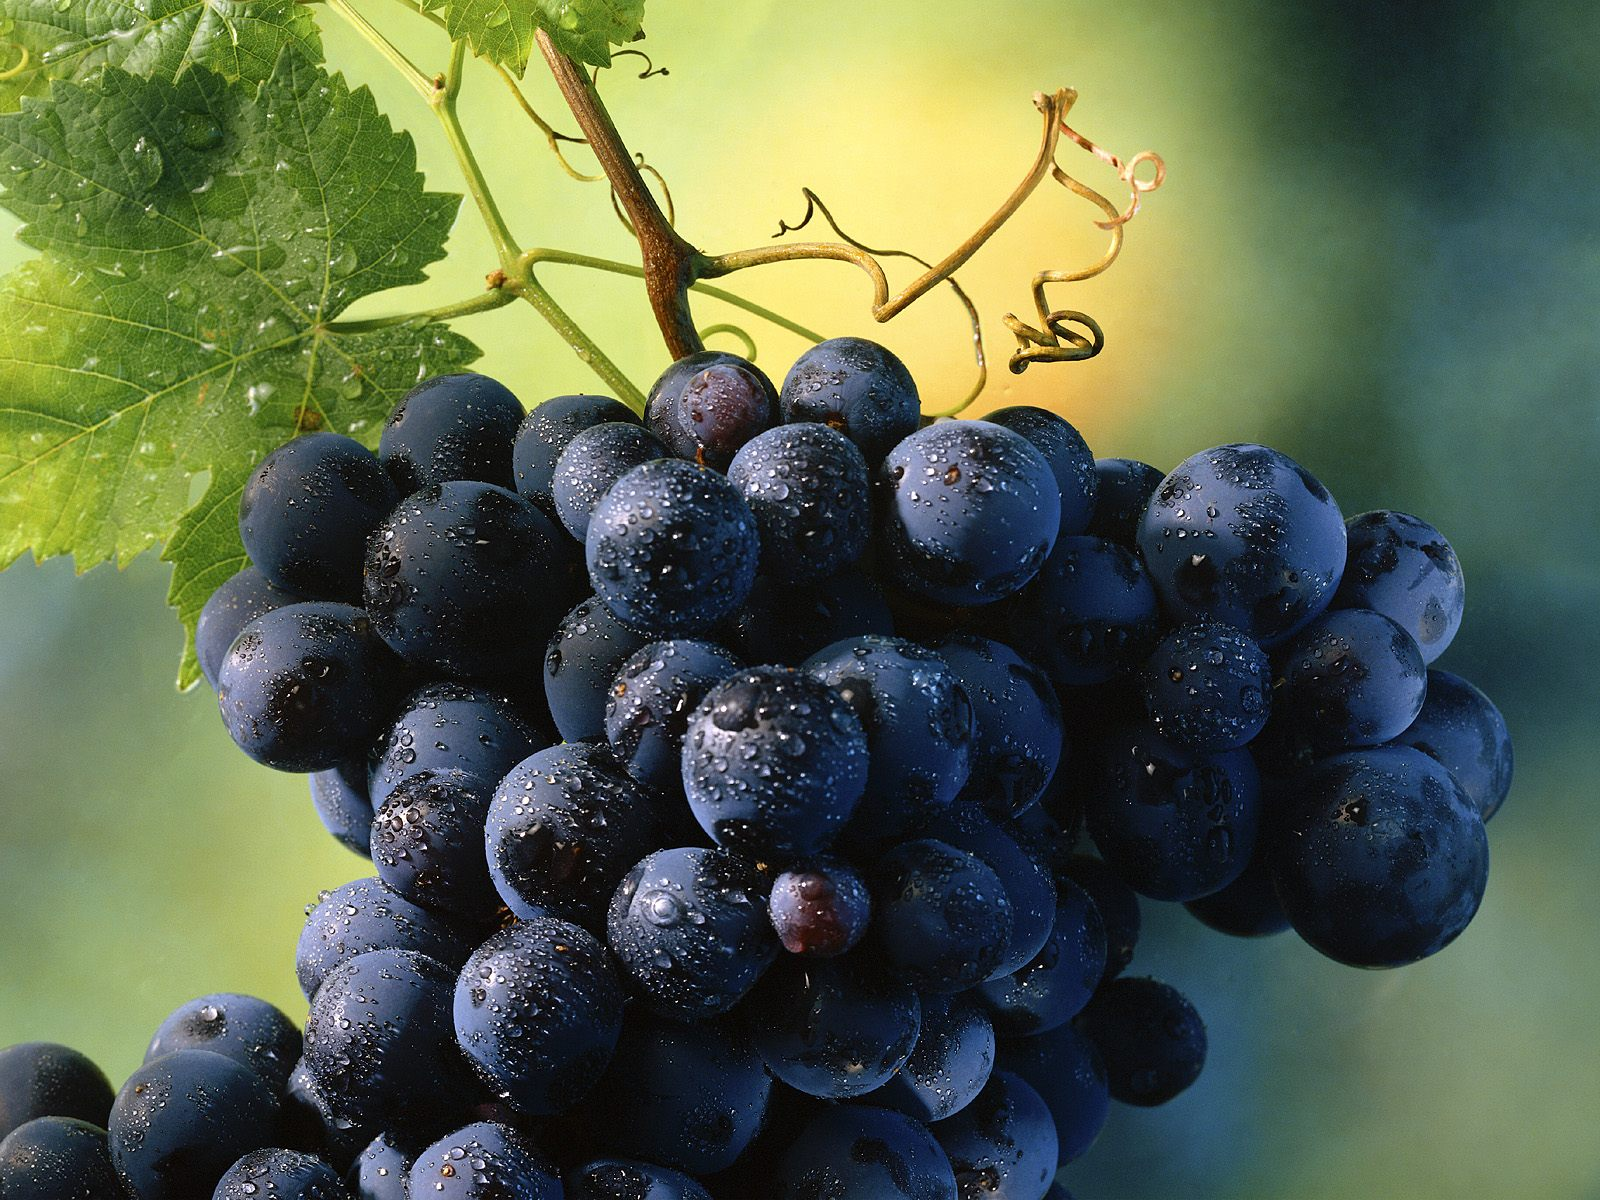 http://4.bp.blogspot.com/_ACWjg6QS7yc/S2uSm92TiZI/AAAAAAAAALA/J3rEfV_BsAU/s1600/Grapes-Fruit-Nature-HD-Wallpaper.jpg